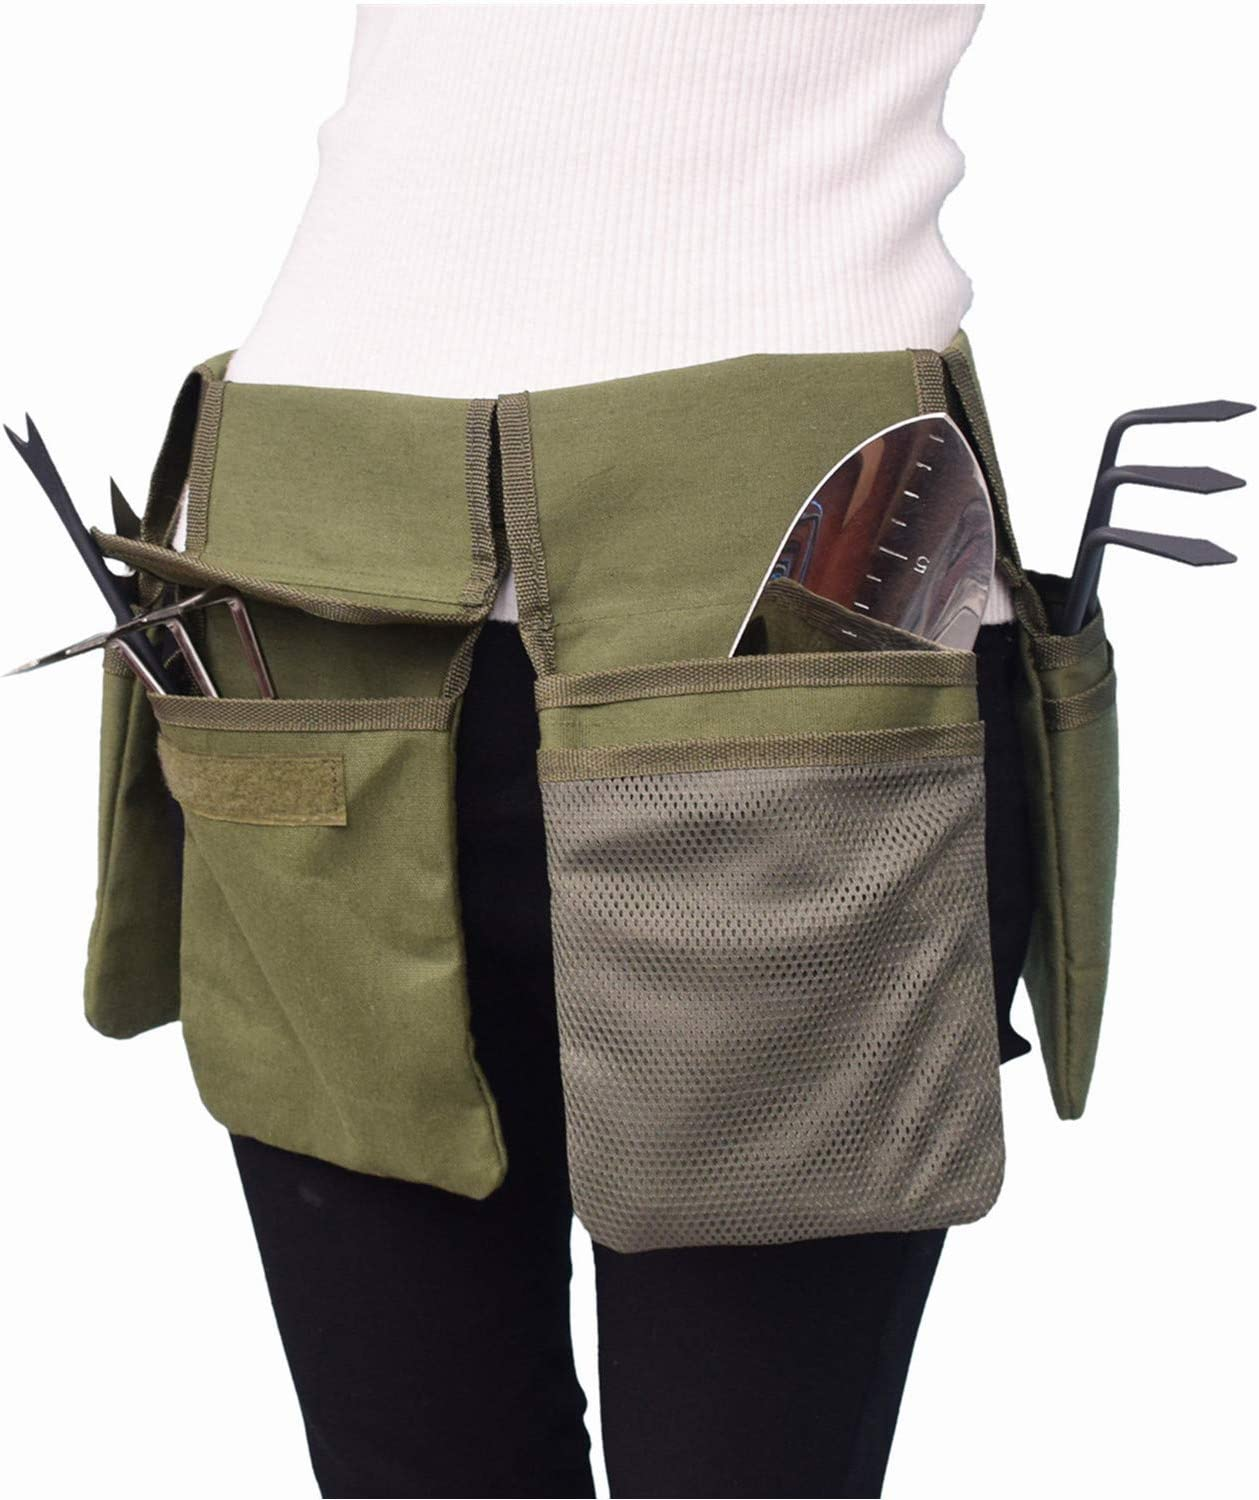 Garden Single Side Tool Apron RV Cleaning Canvas Tool Belt For Women Waist Length to 49 Garden Adjustable Utility Tool Pouch with Belt for Men for Home